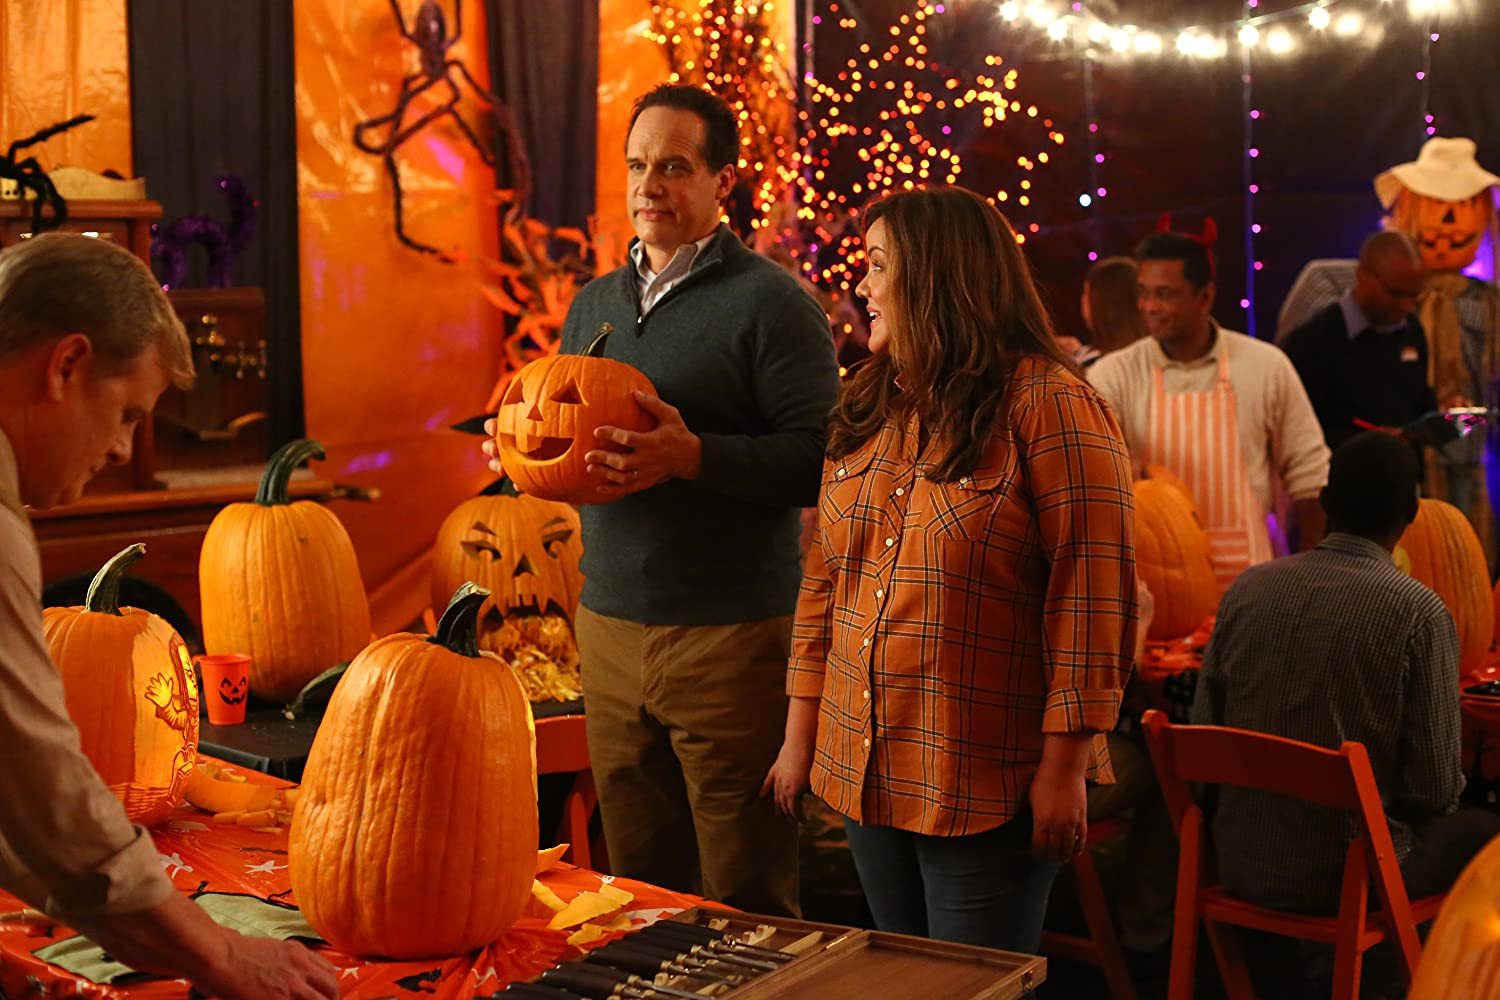 Diedrich Bader and Katy Mixon in The Maze (2019)